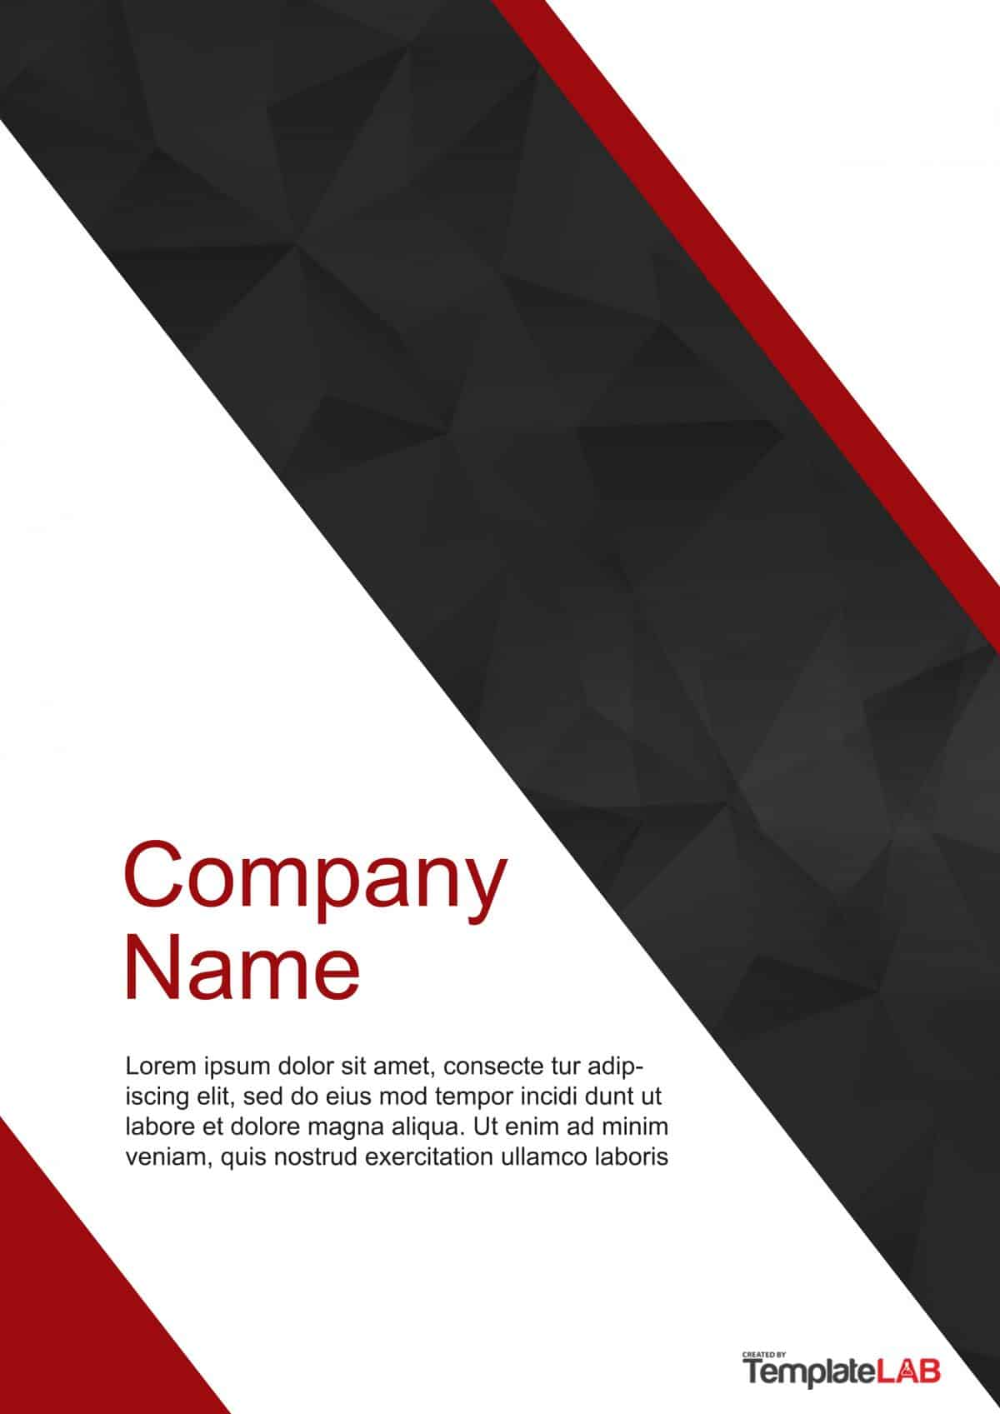 Download Cover Page Template 2 Templatelab Cover Page Template Cover Page Template Word Title Page Template